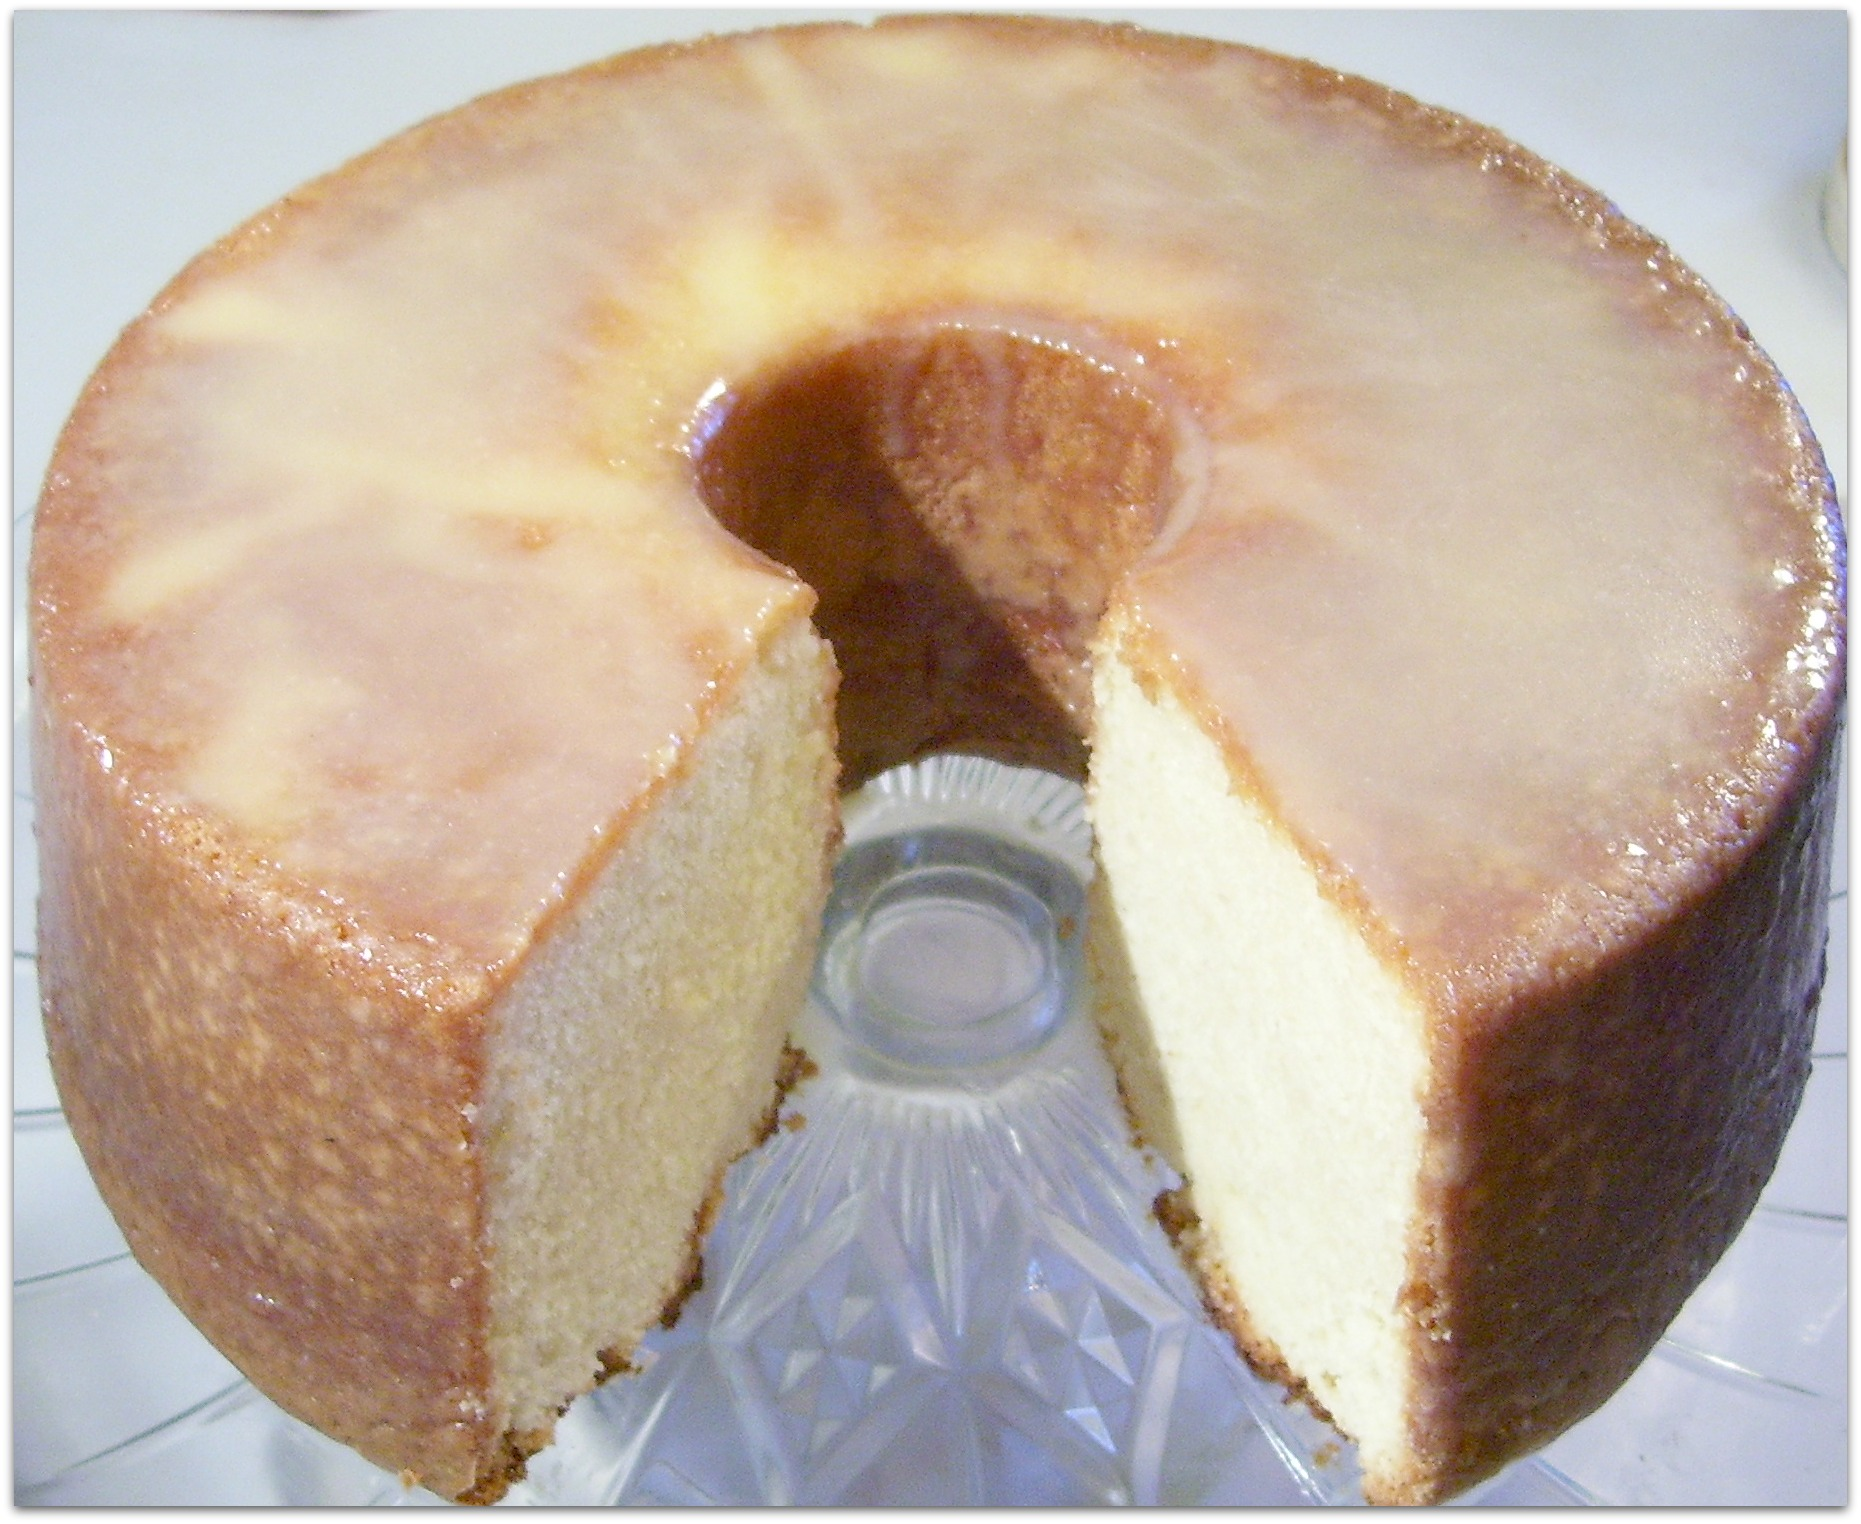 Homemade Old Fashioned Sour Cream Cake Recipe with a thin glaze with make your cake look and taste like bakery-made.